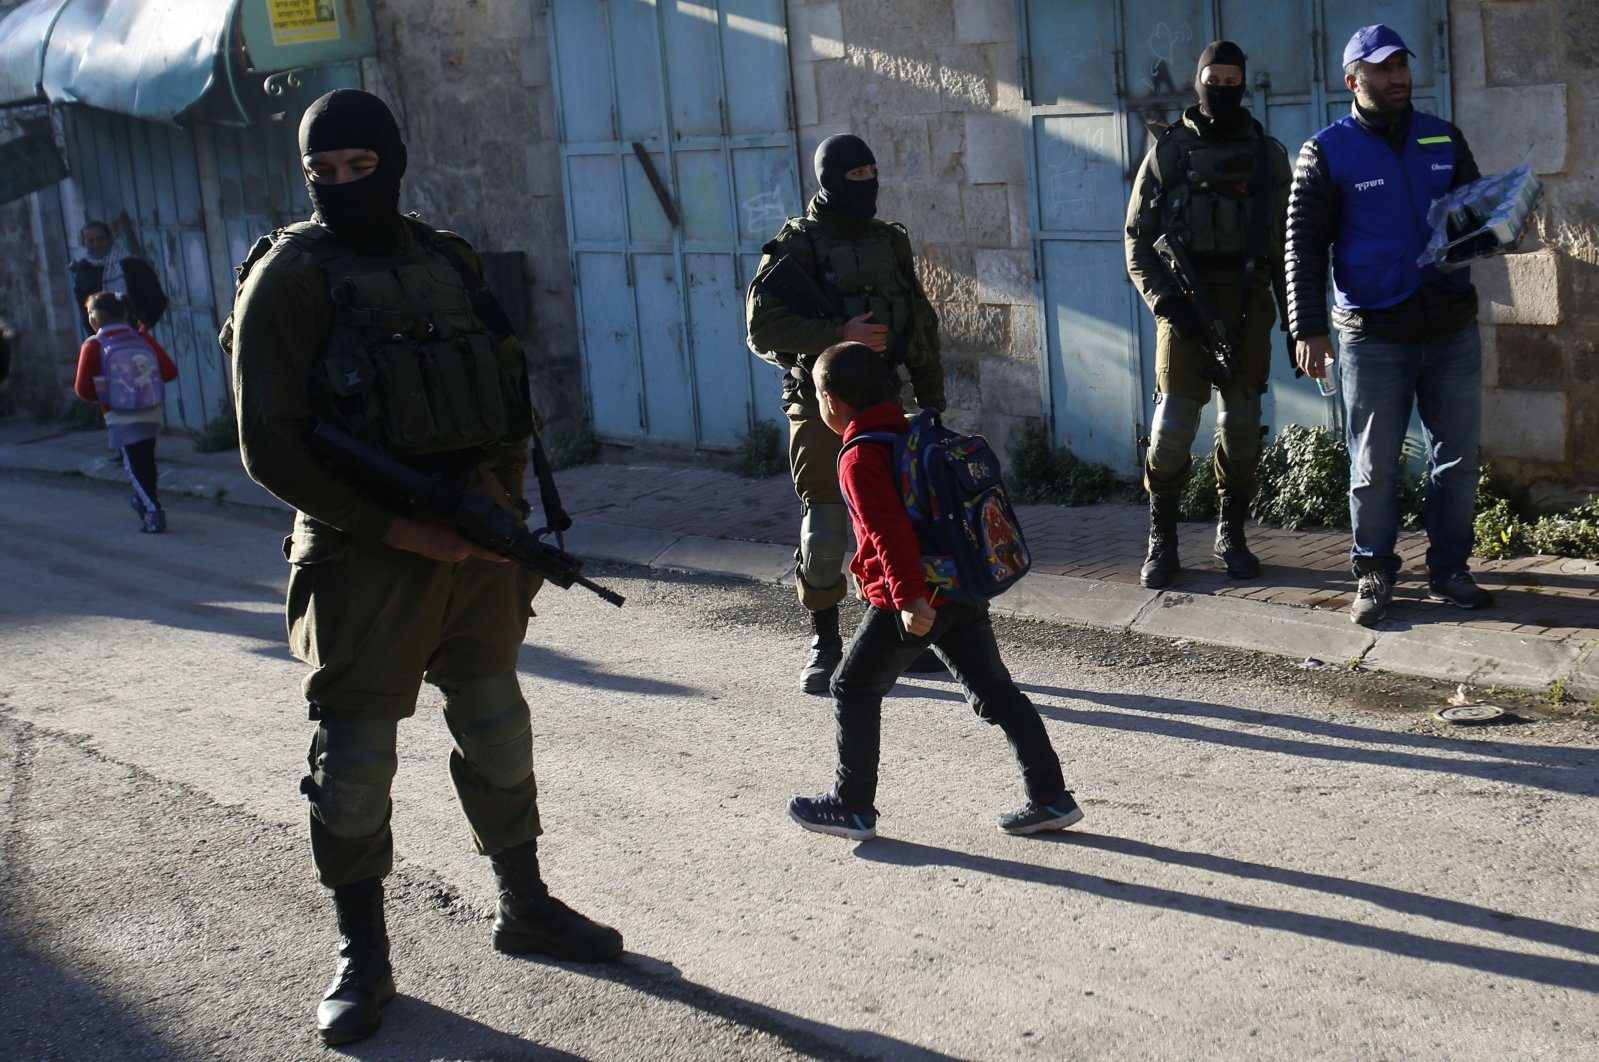 Palestinian children walk past Israeli soldiers on their way to school in the occupied West Bank city of Hebron, Feb. 12, 2019. (AP Photo)